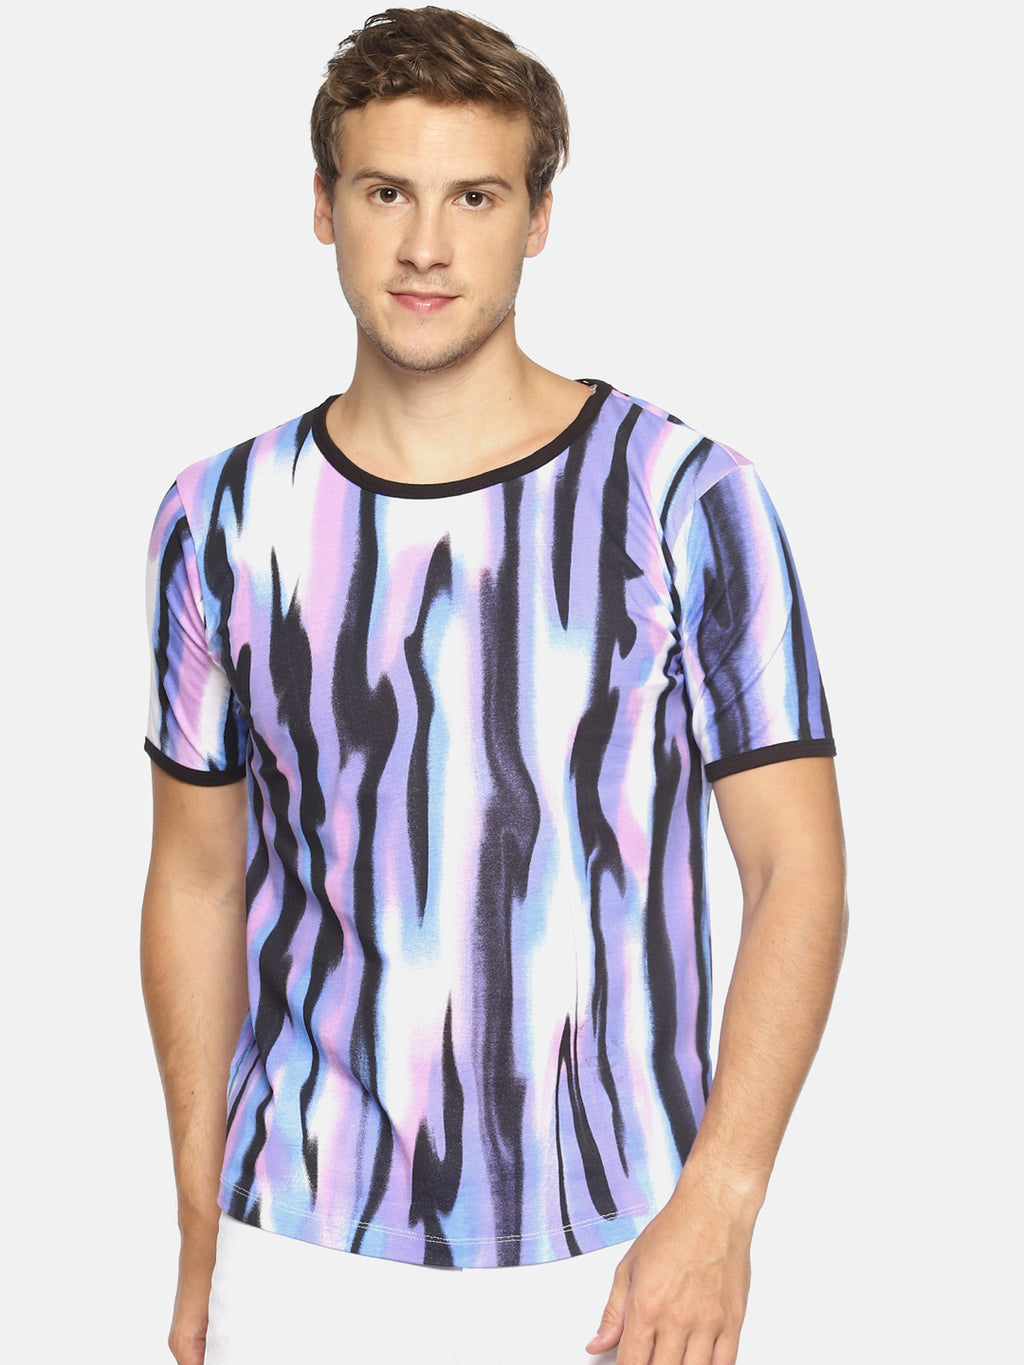 Multi colored all over print t-shirt